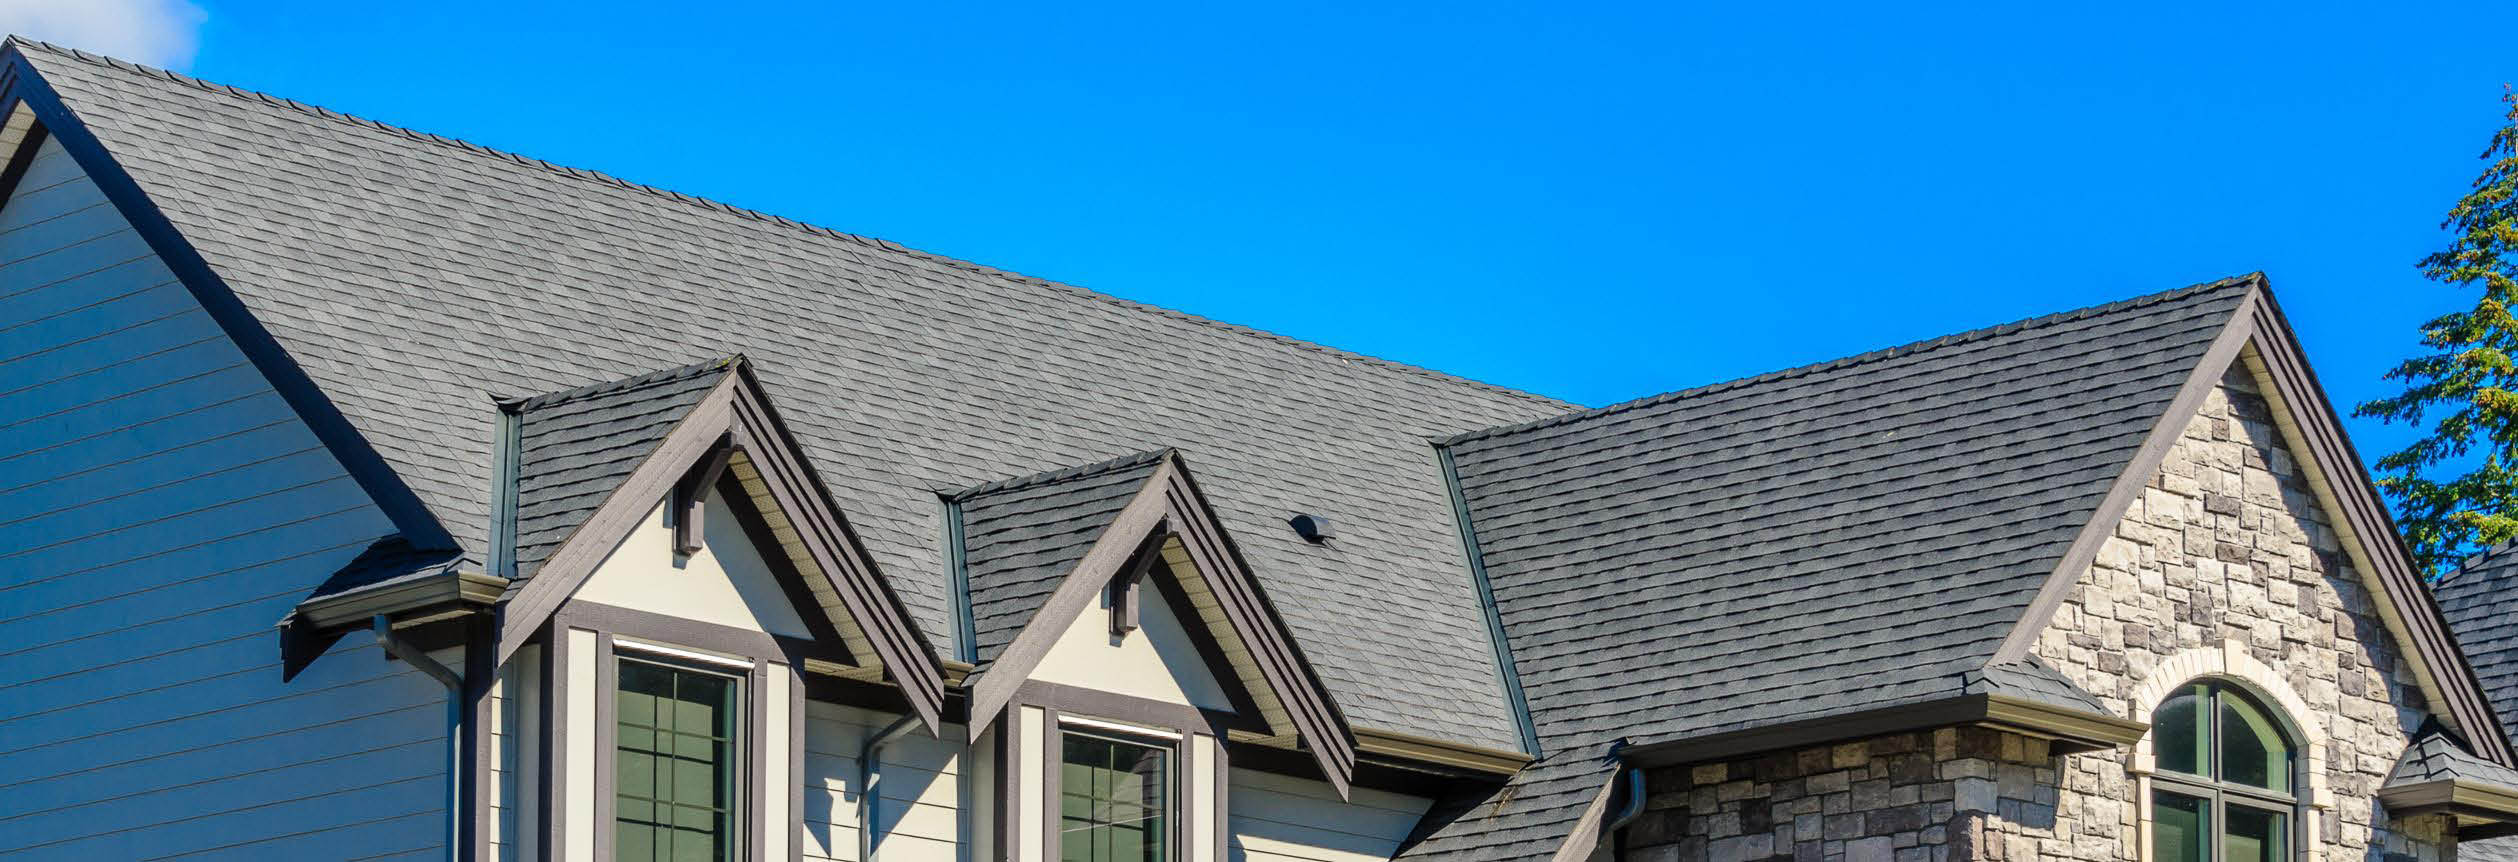 Impriano Roofing In Berwyn Pa Local Coupons November 2019